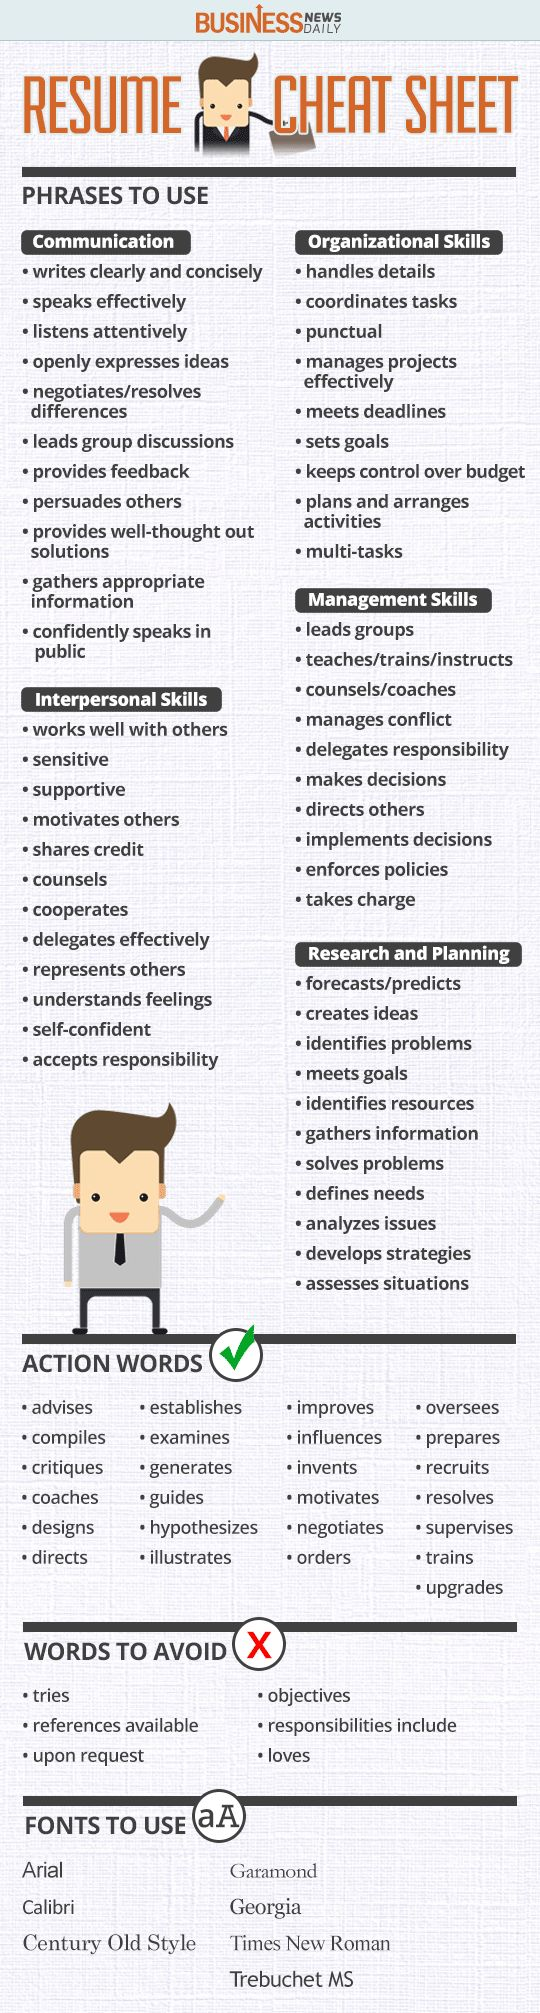 Opposenewapstandardsus  Unusual  Ideas About Resume On Pinterest  Cv Format Resume Cv And  With Lovable Resume Cheat Sheet Infographic Andrews Almost Done With A Complete Unit On Employment Which With Beauteous Scannable Resume Definition Also Social Worker Resume Examples In Addition Sample General Resume And Students Resume As Well As Kinkos Resume Paper Additionally Warehouse Worker Job Description Resume From Pinterestcom With Opposenewapstandardsus  Lovable  Ideas About Resume On Pinterest  Cv Format Resume Cv And  With Beauteous Resume Cheat Sheet Infographic Andrews Almost Done With A Complete Unit On Employment Which And Unusual Scannable Resume Definition Also Social Worker Resume Examples In Addition Sample General Resume From Pinterestcom